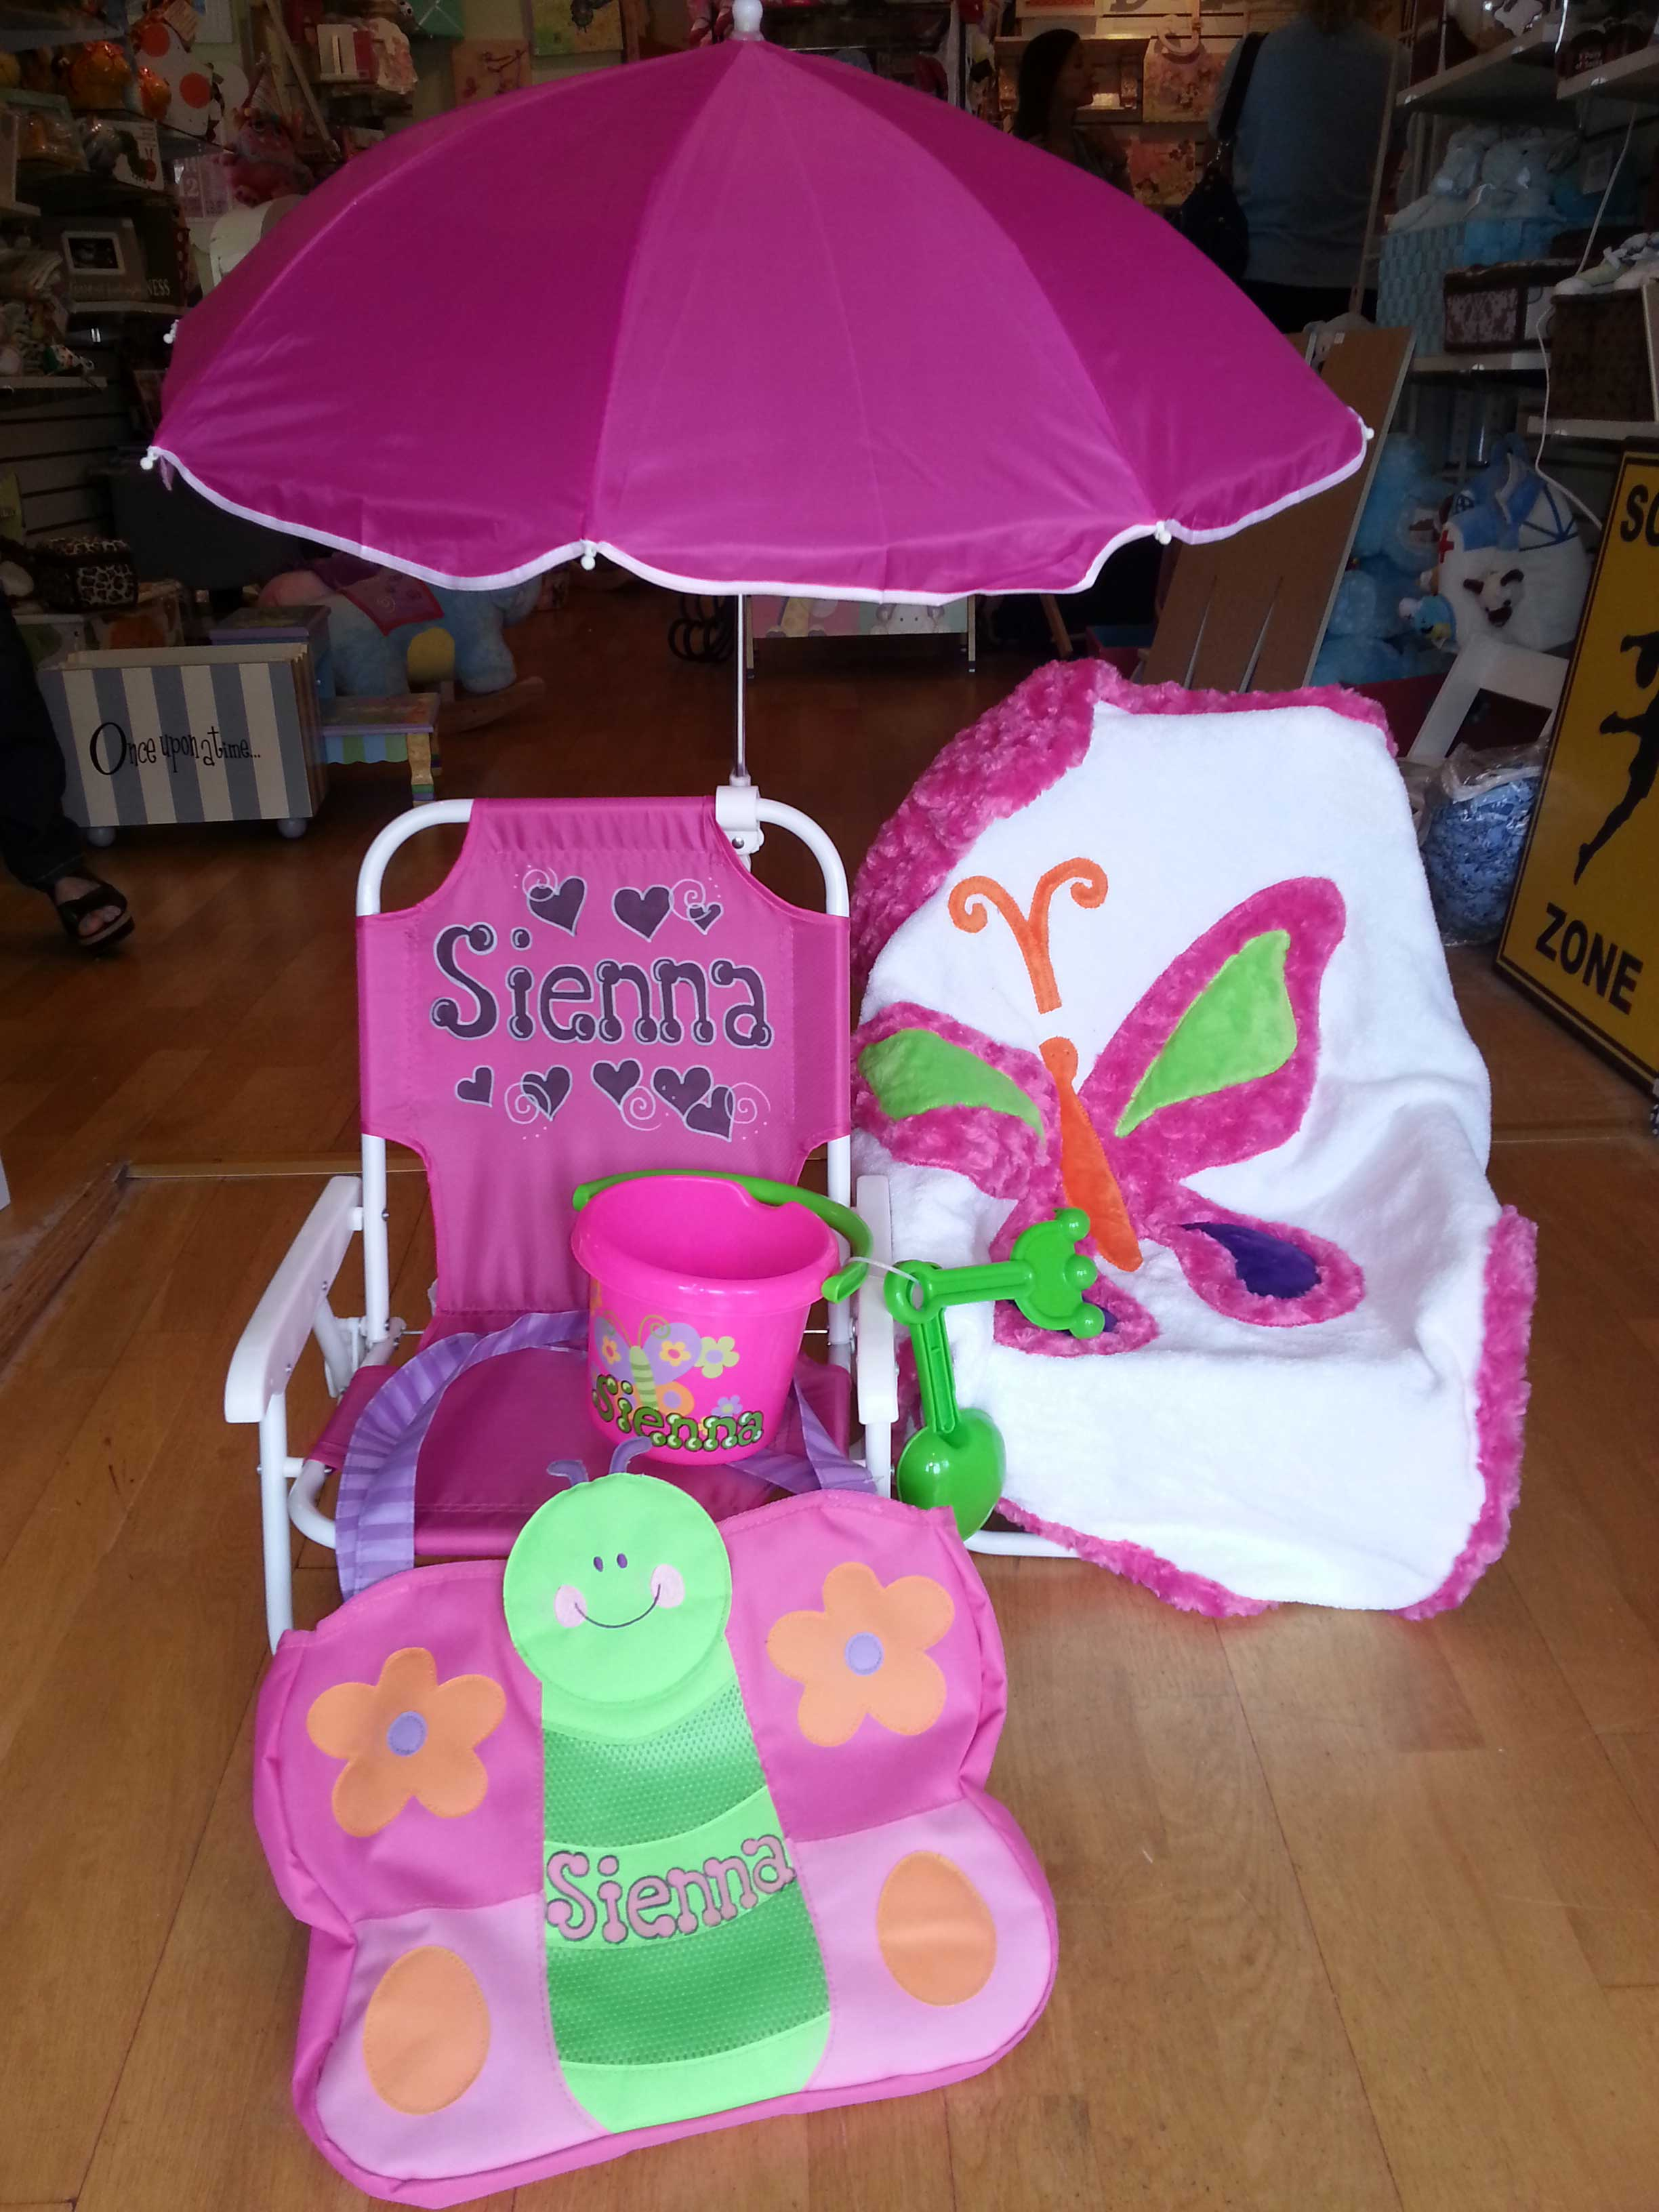 toddler beach chair personalized collins barber chairs folding with umbrella purple pumpkin gifts